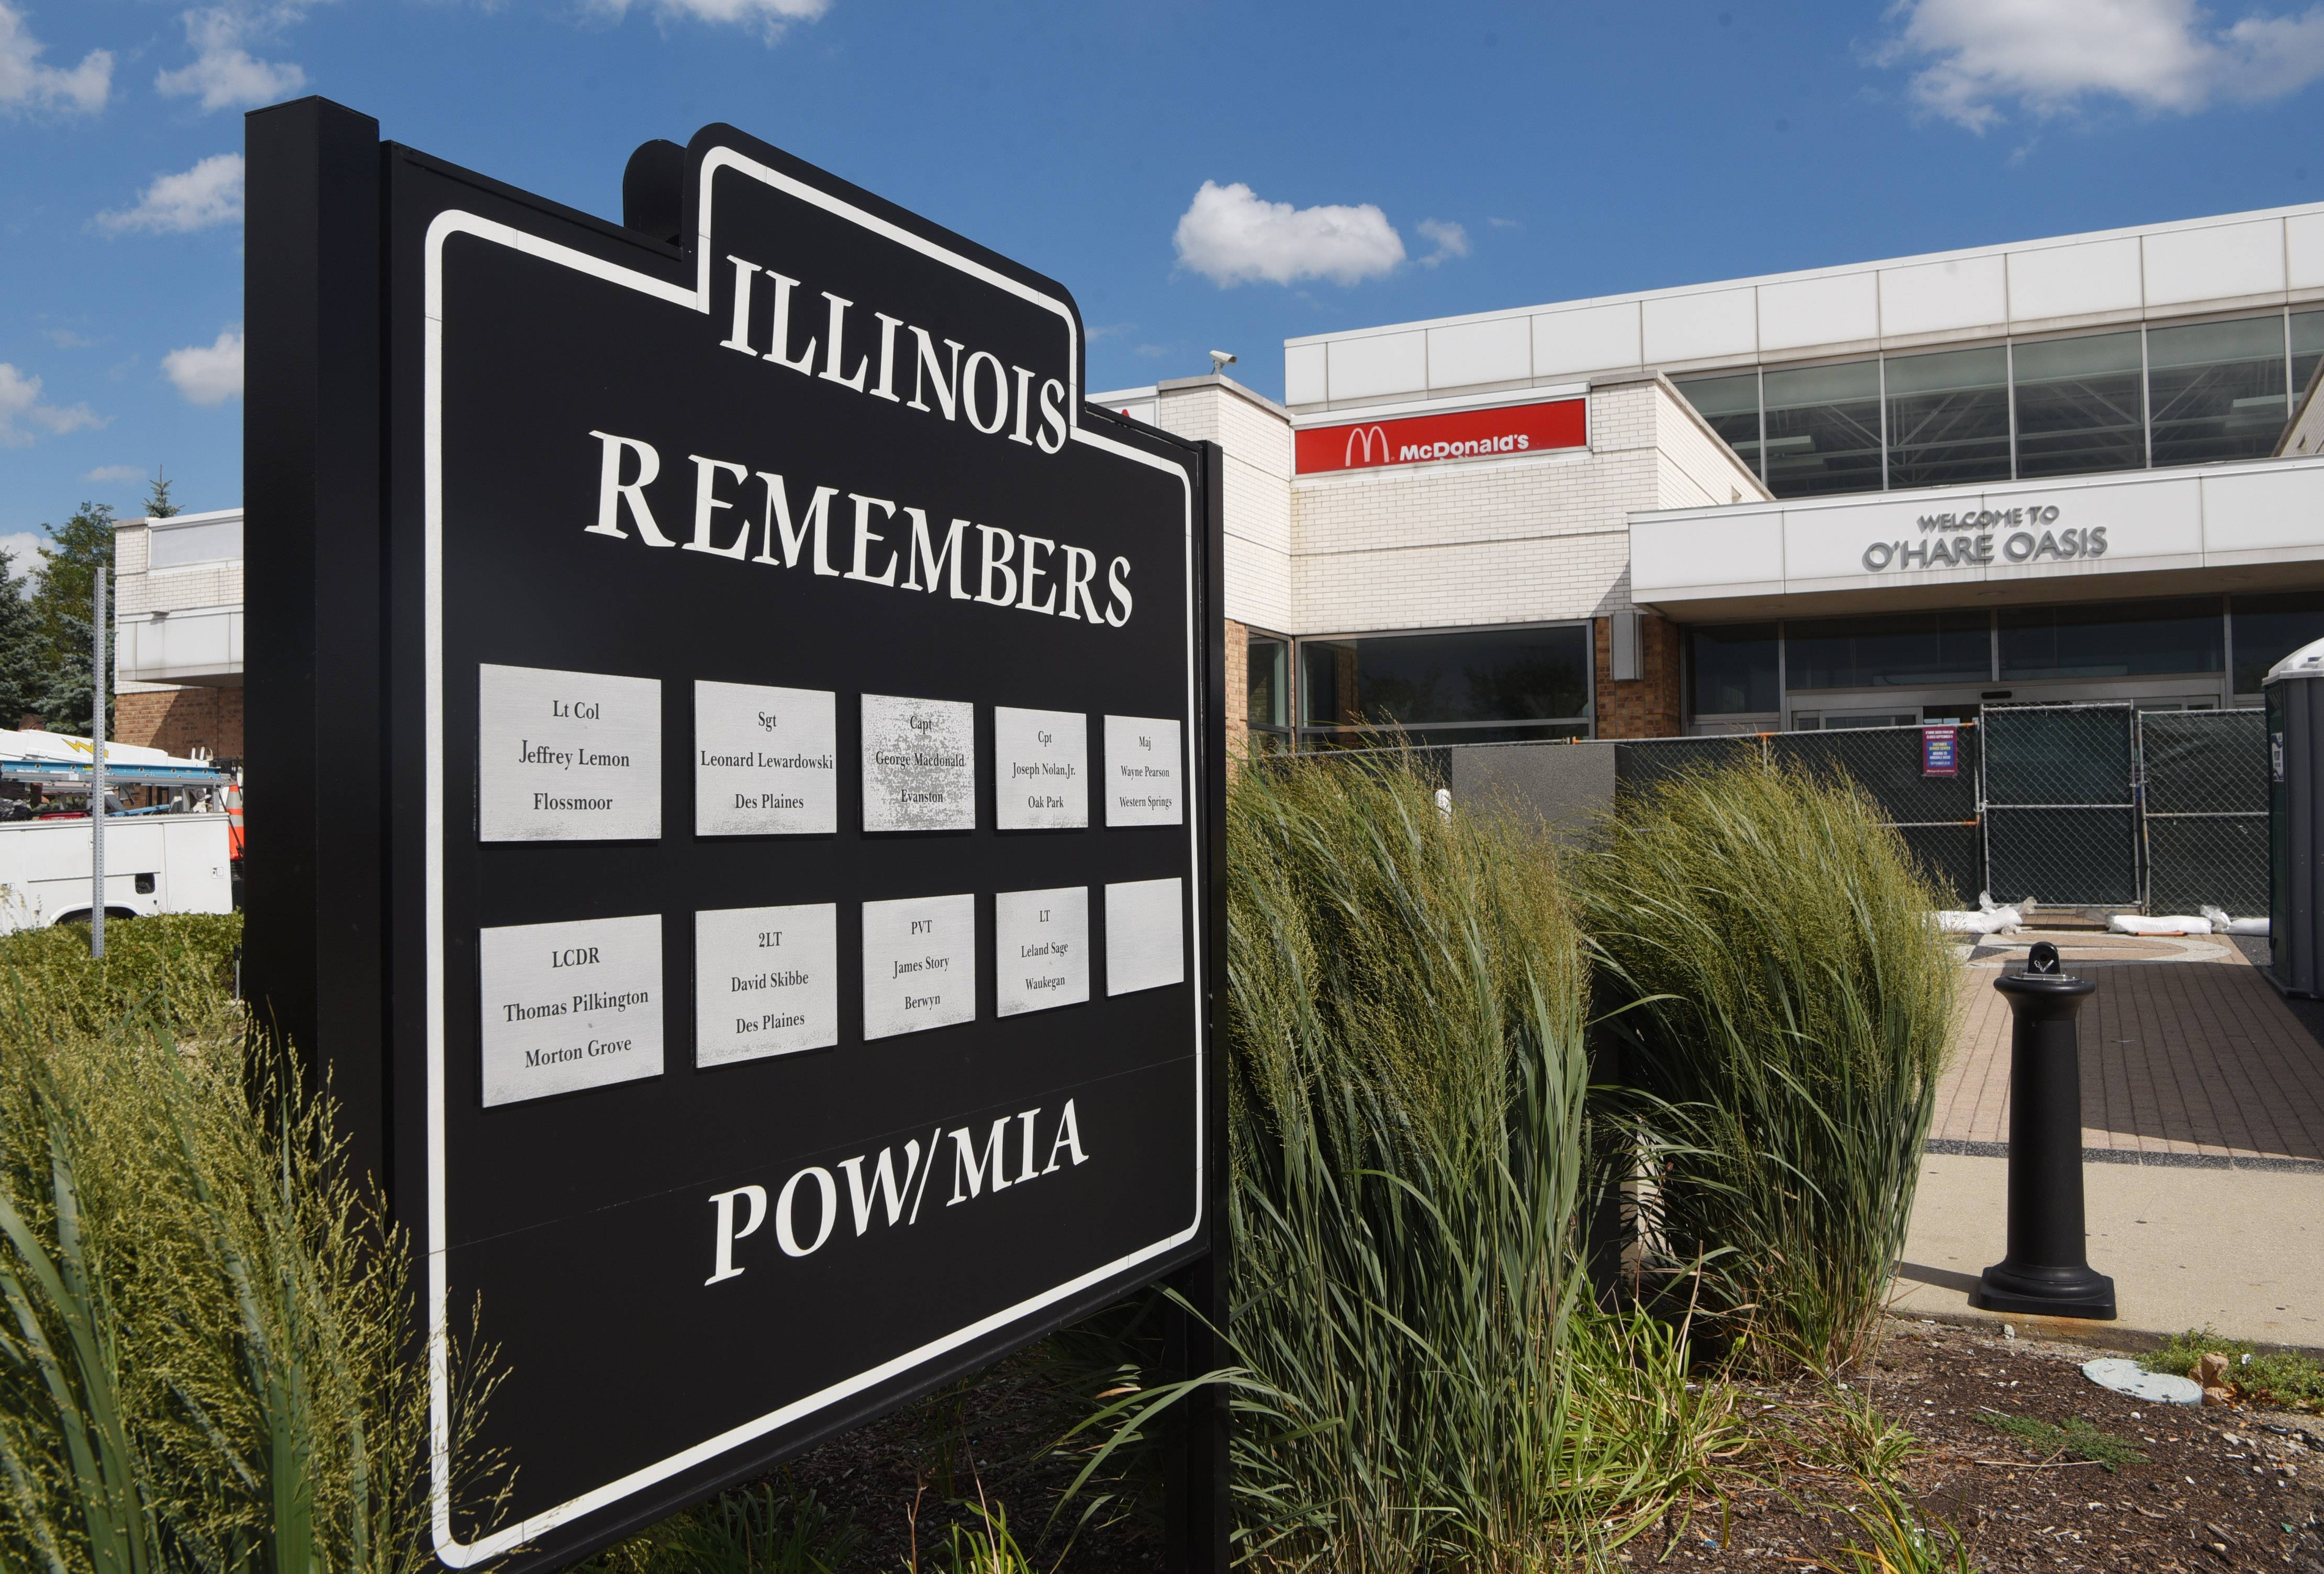 What happens to POW/MIA tollway monument after O'Hare oasis teardown?